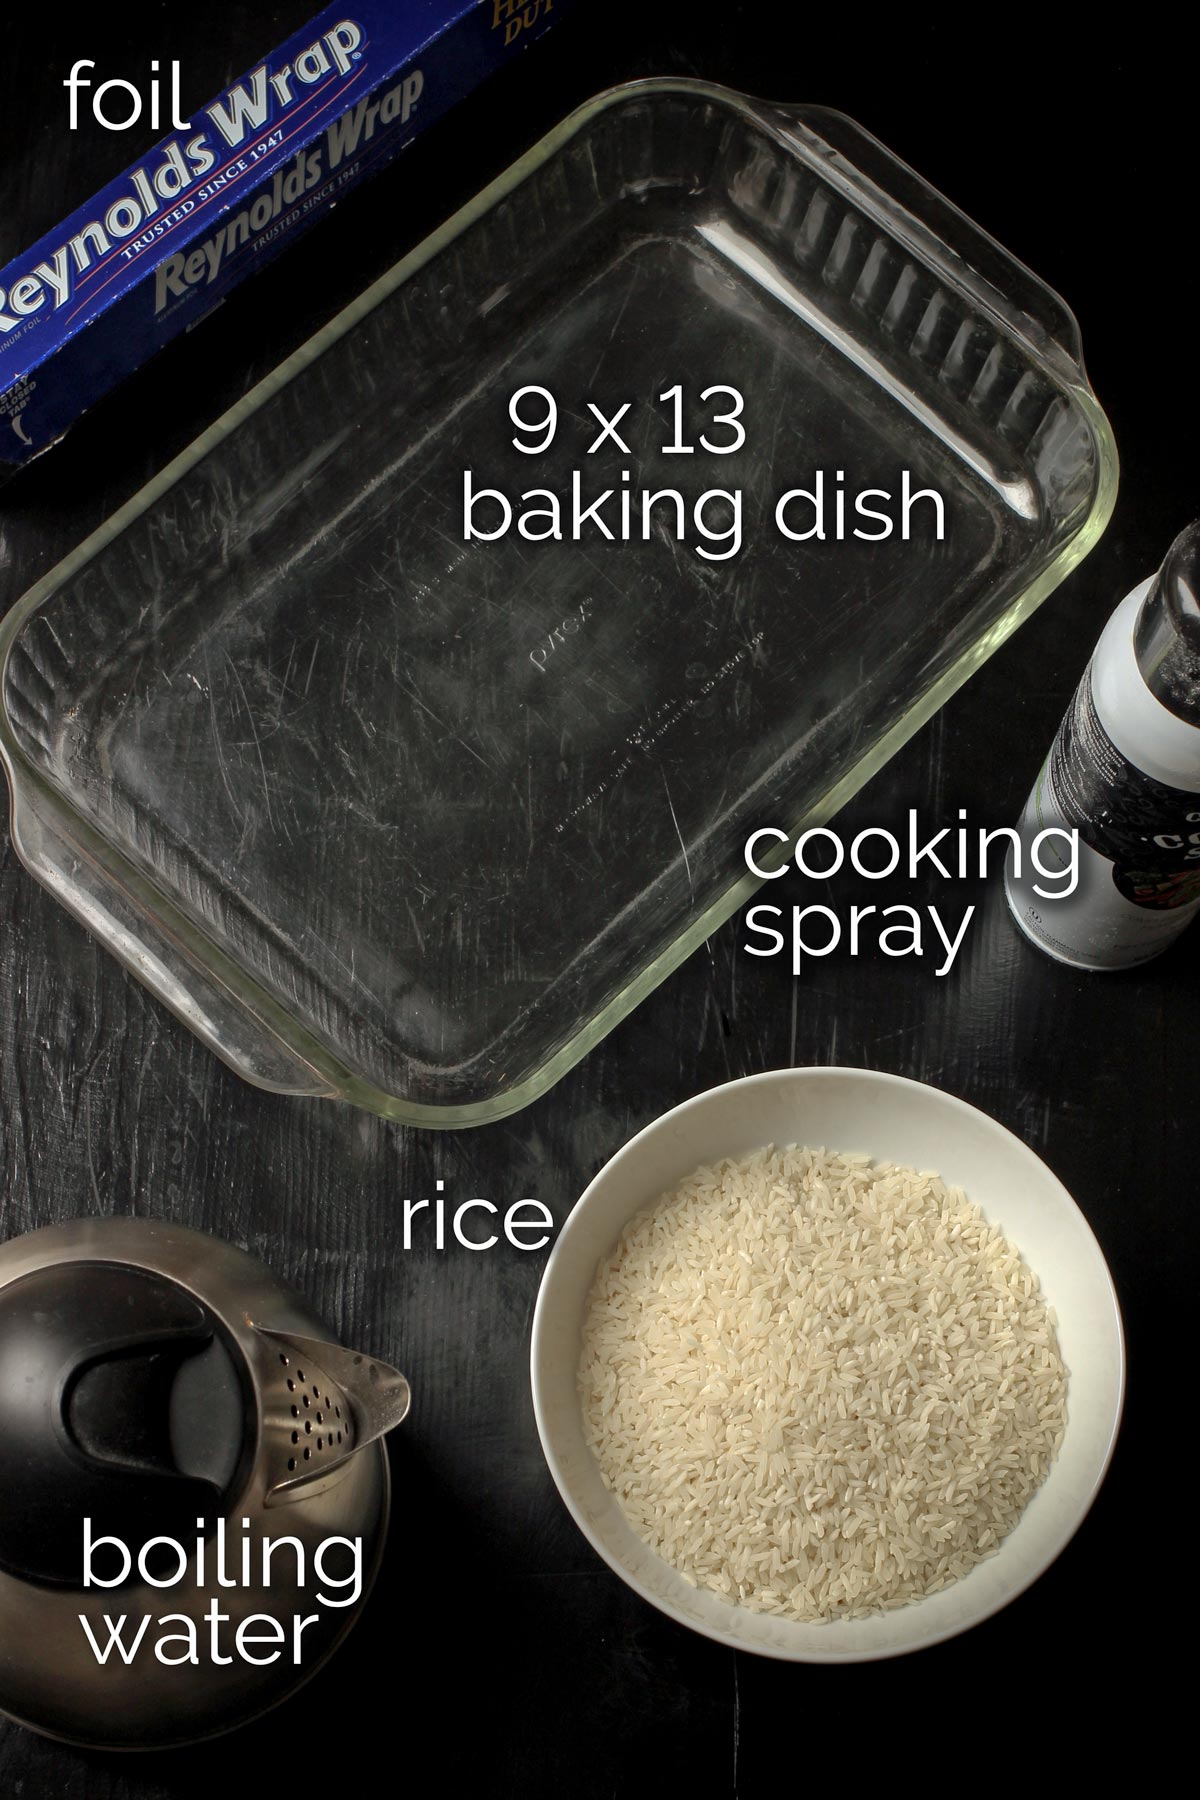 ingredients and equipment needed to make baked rice on tabletop.